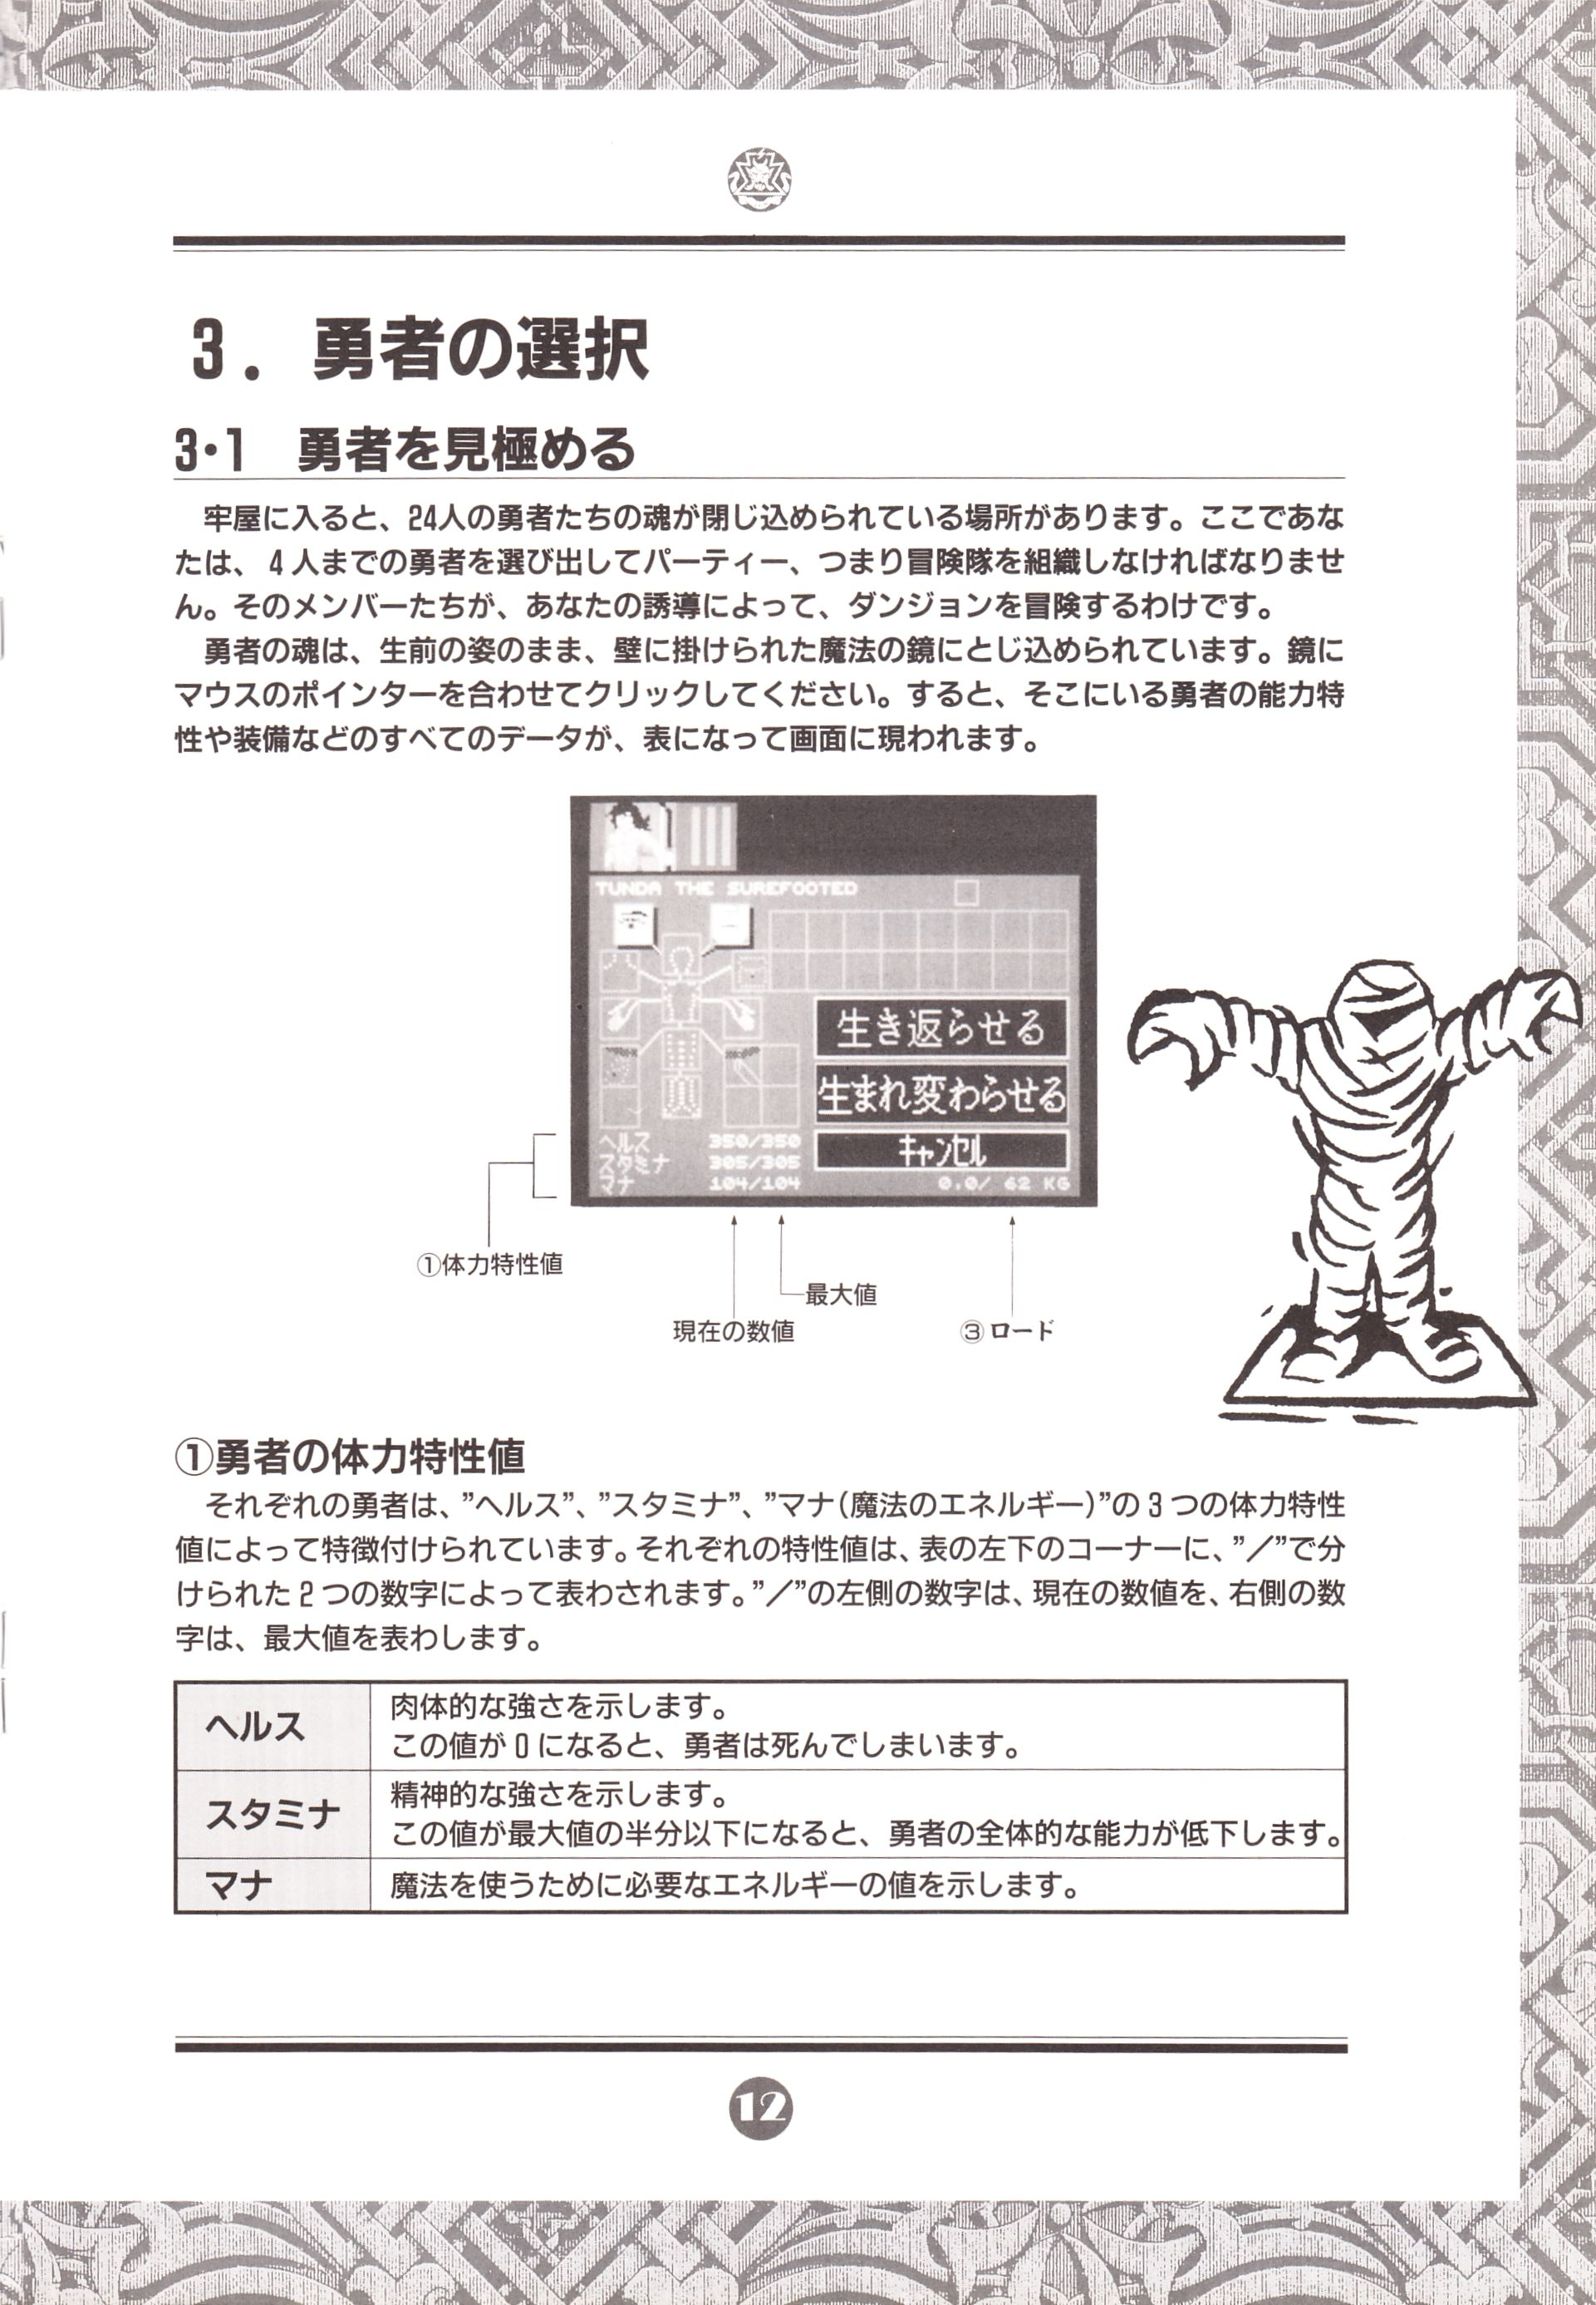 Game - Chaos Strikes Back - JP - PC-9801 - 3-5-inch - An Operation Manual - Page 015 - Scan